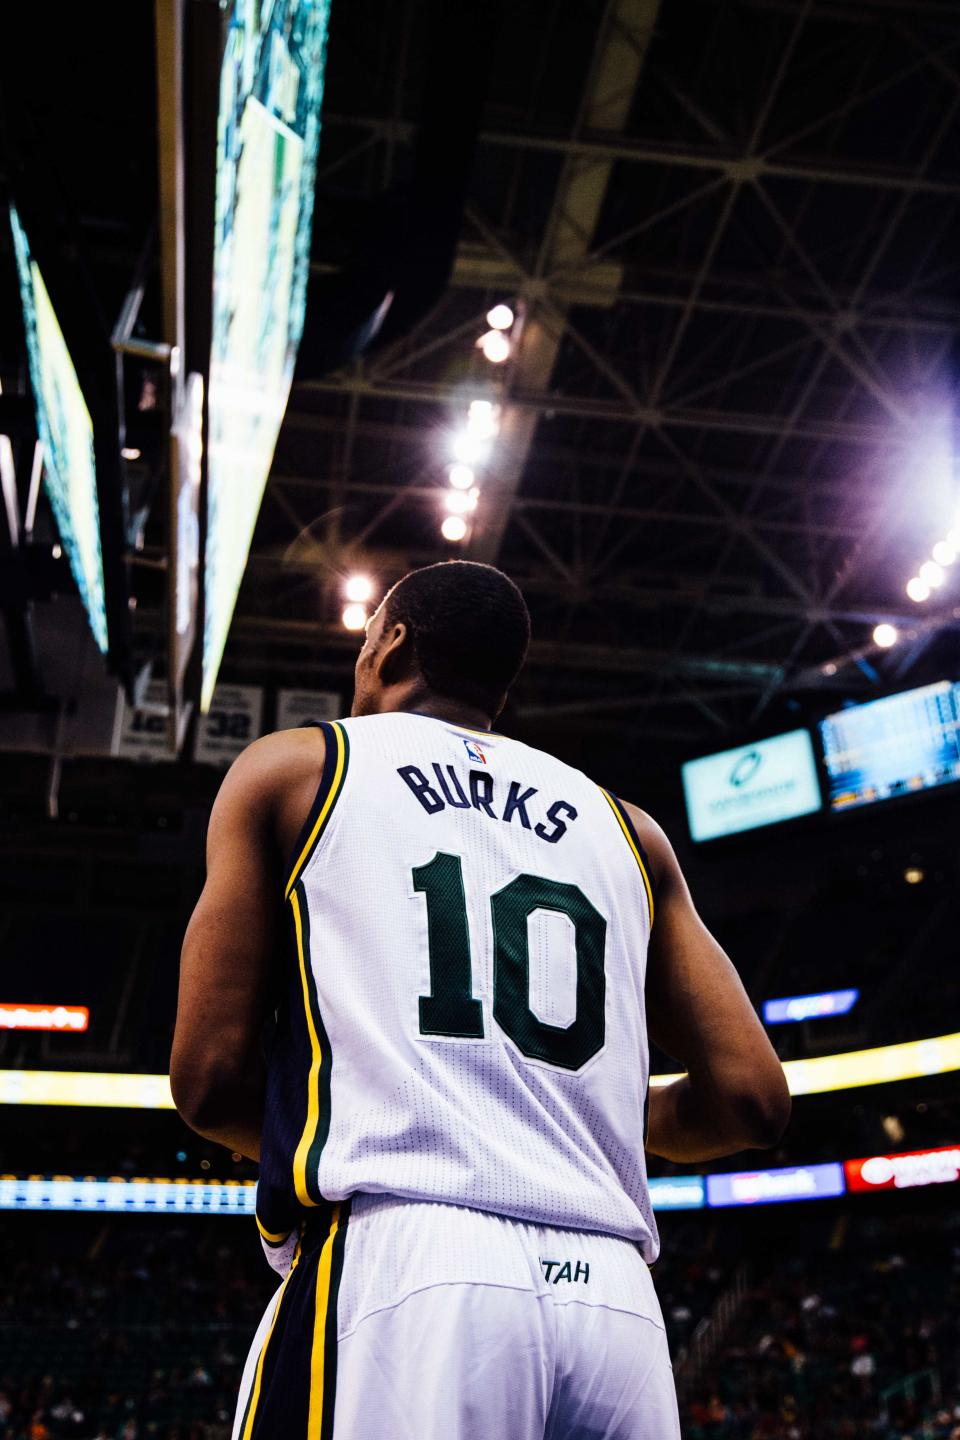 basketball, court, arena, athlete, sports, fitness, jersey, guy, man, people, team